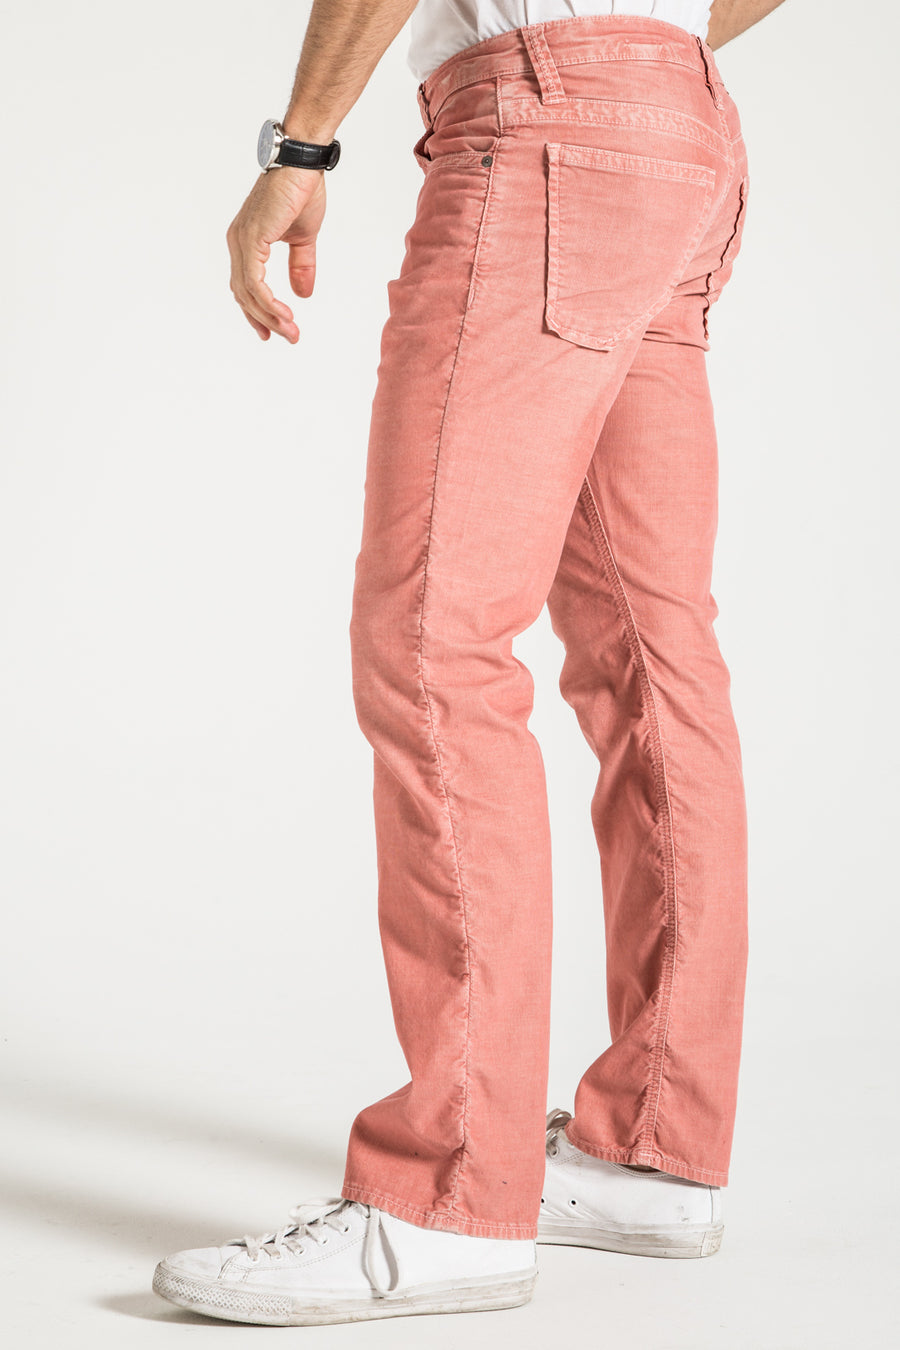 TEXAS STRAIGHT IN RETRO PINK CORDUROY